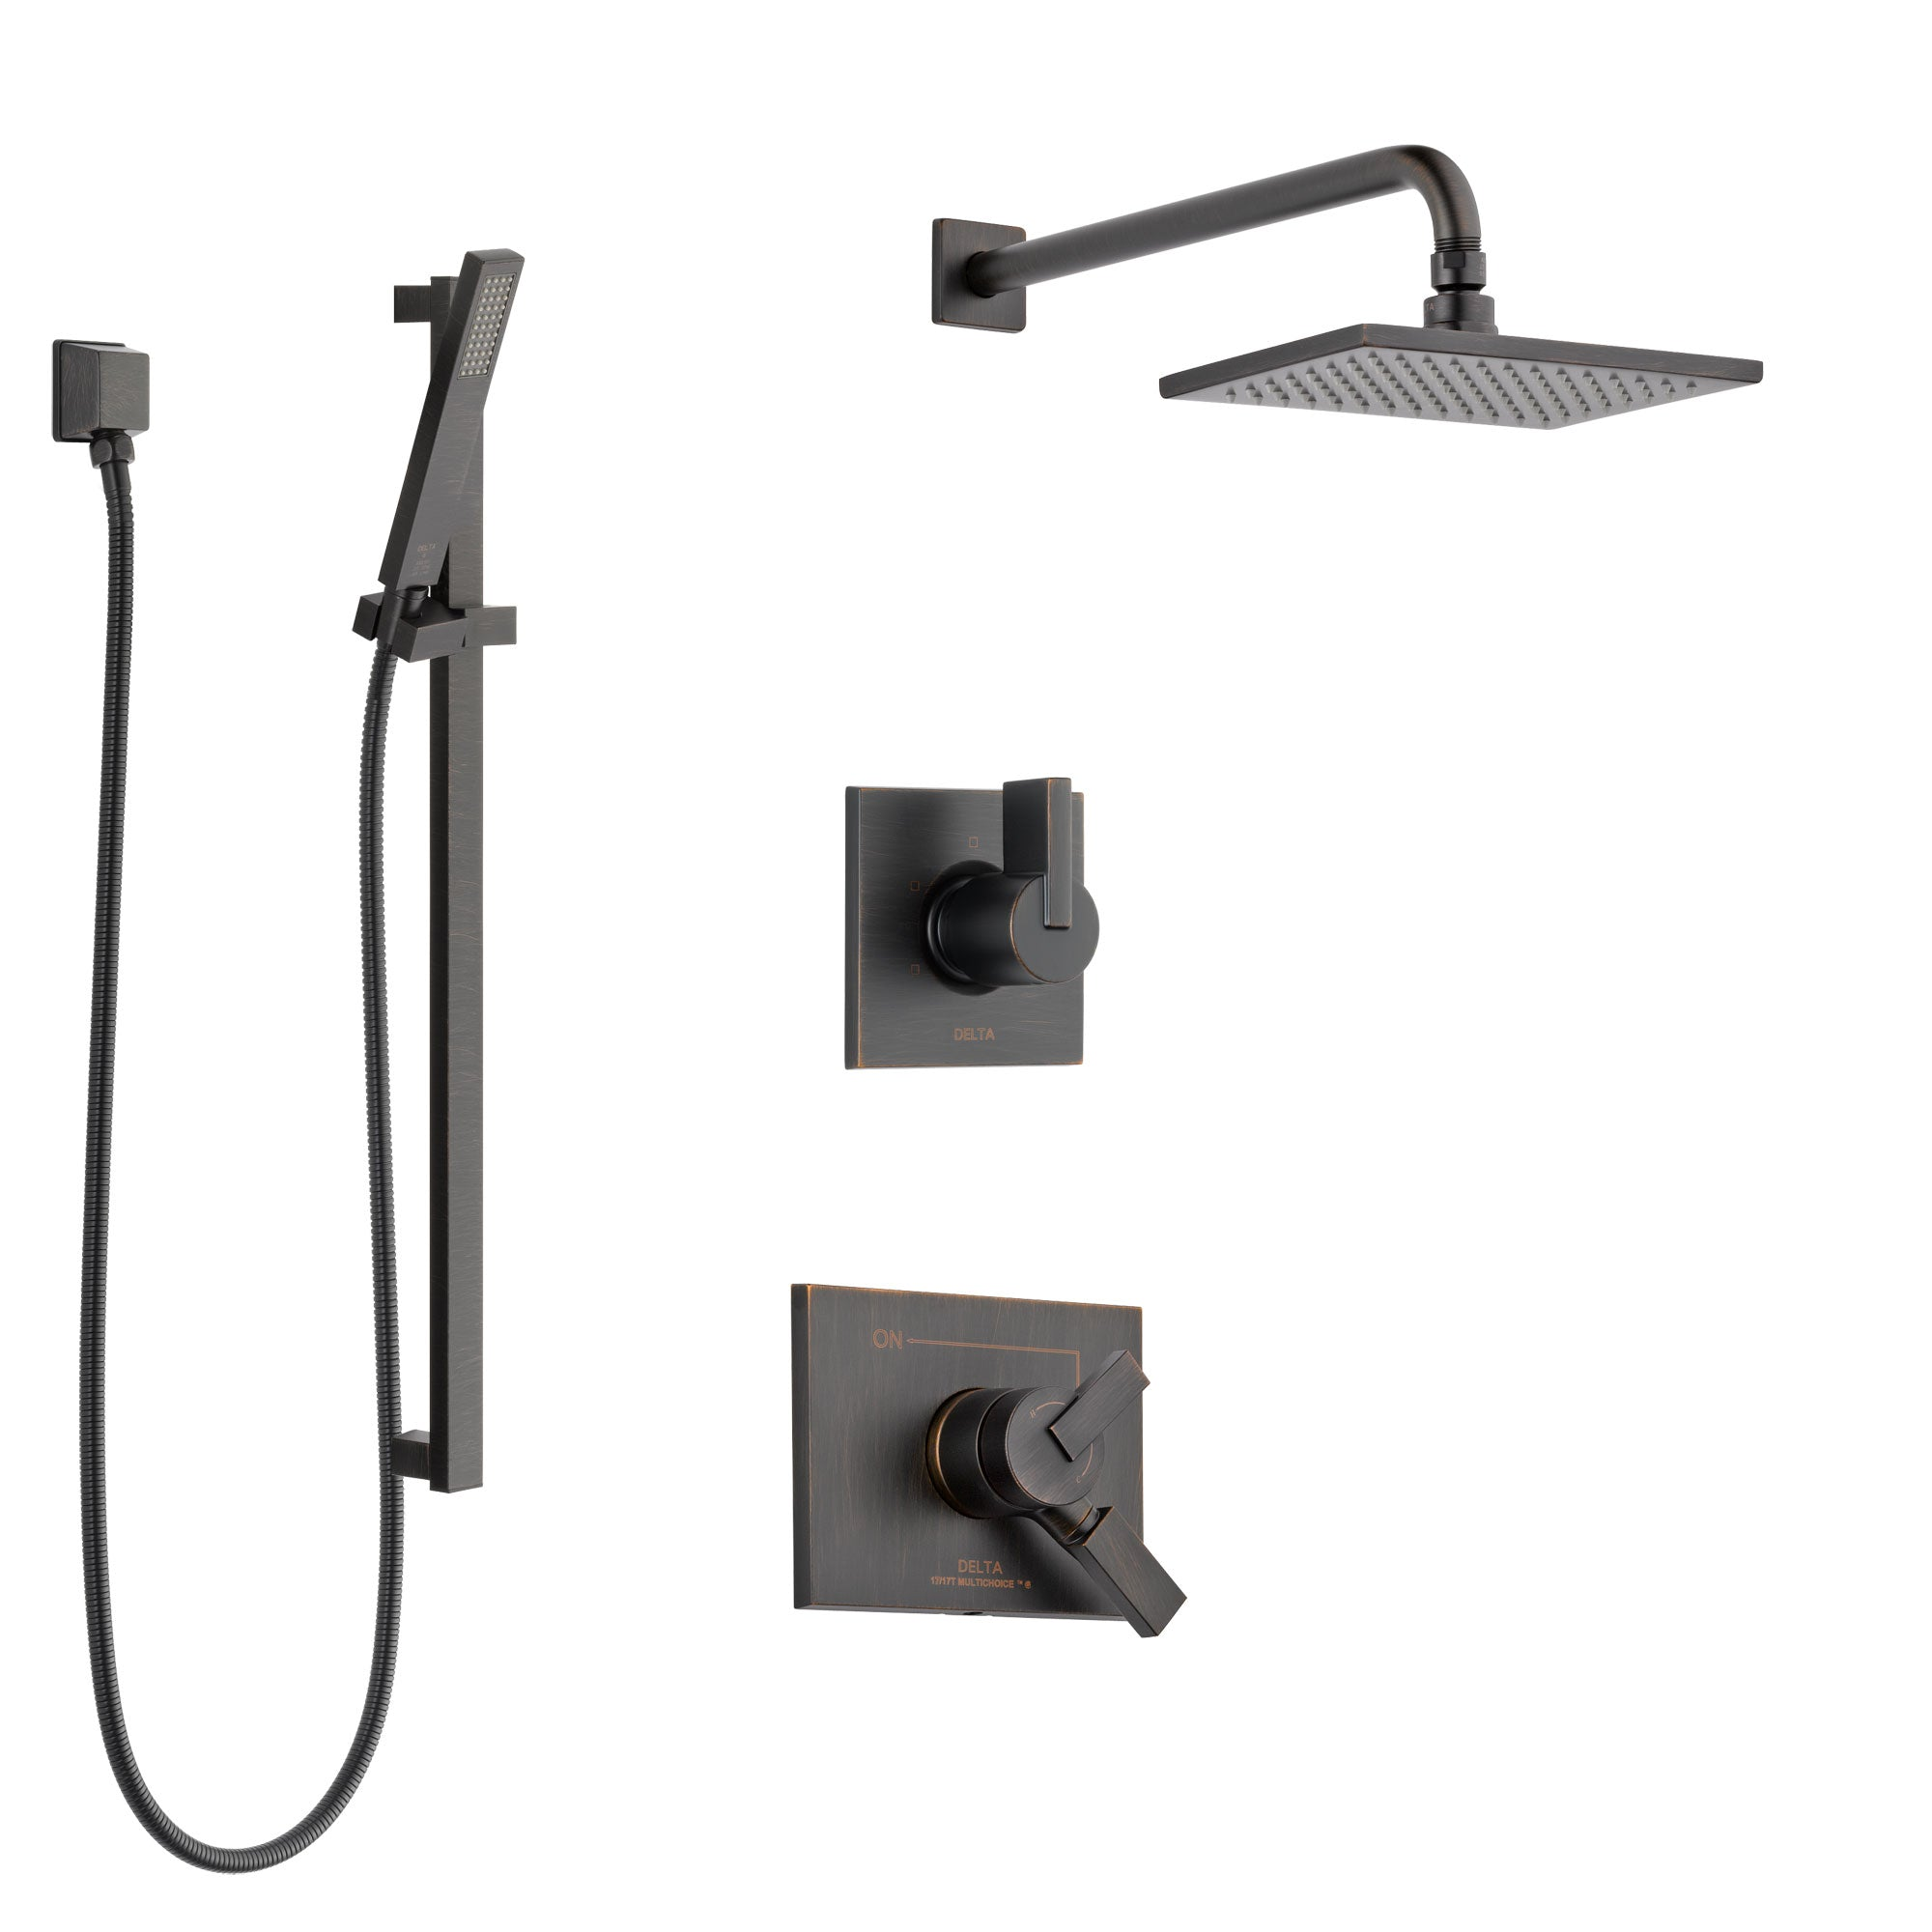 Delta Vero Venetian Bronze Finish Shower System with Dual Control Handle, 3-Setting Diverter, Showerhead, and Hand Shower with Slidebar SS172531RB4